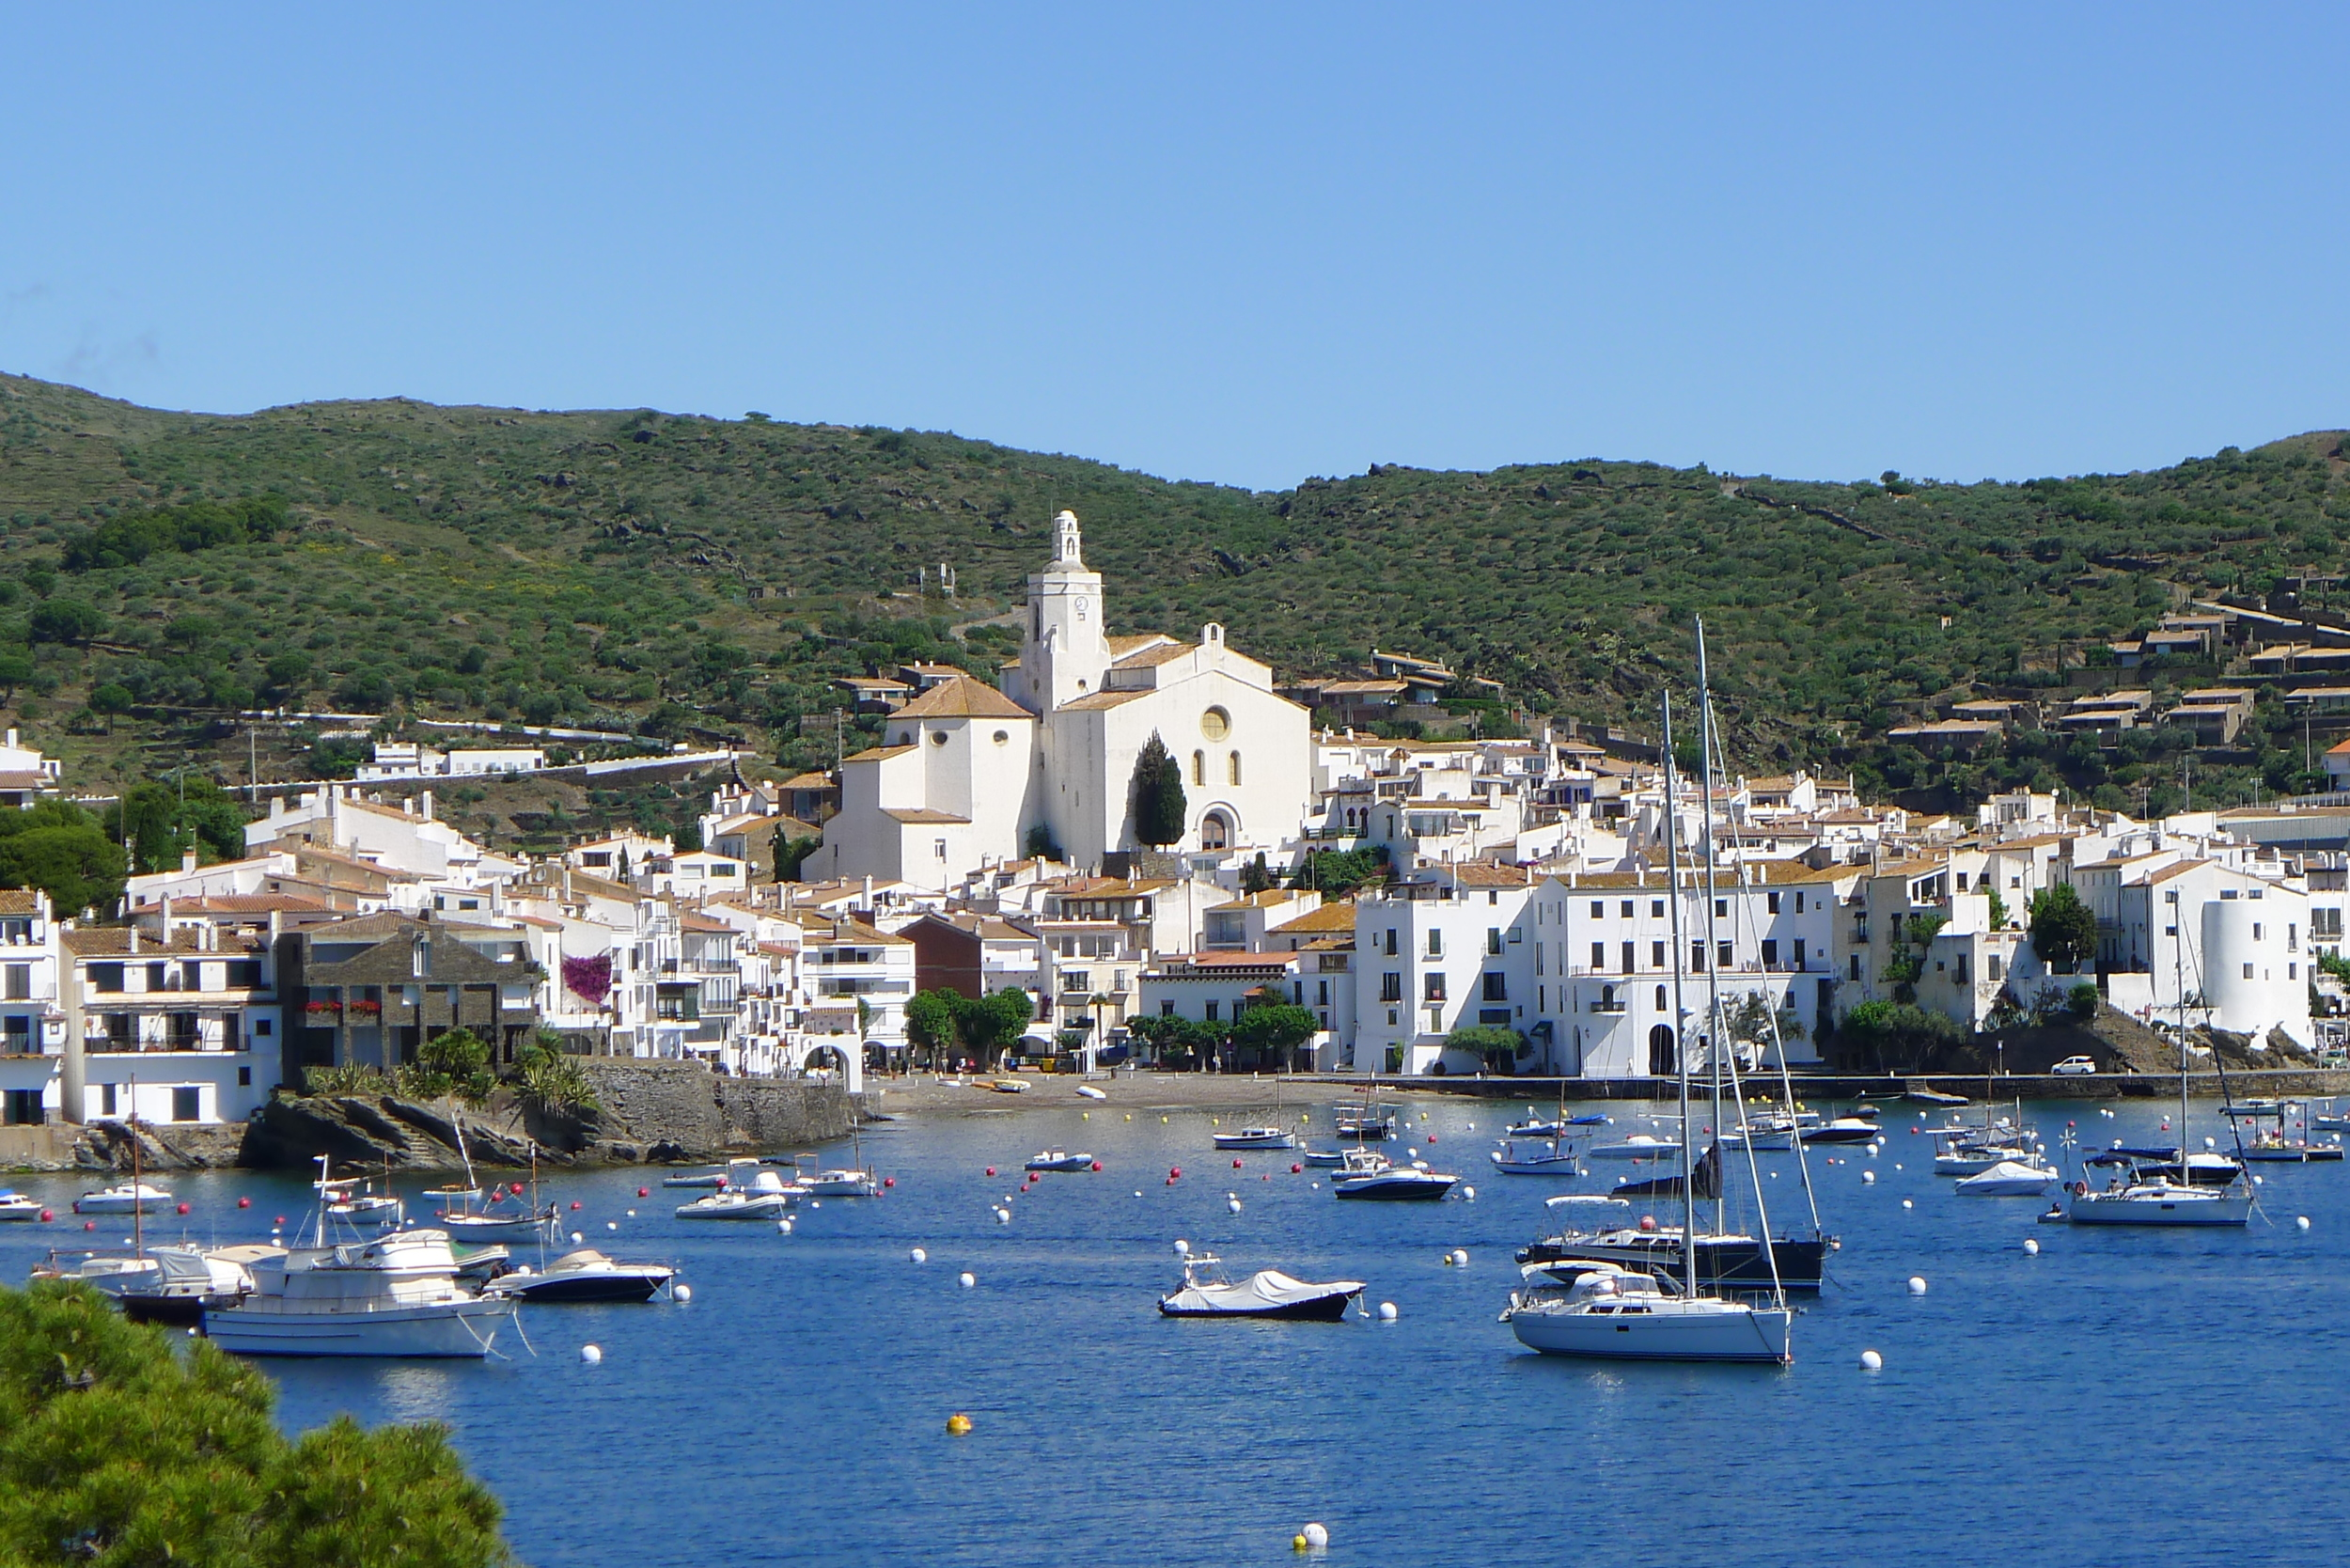 cadaques-view-from-rocks.jpg